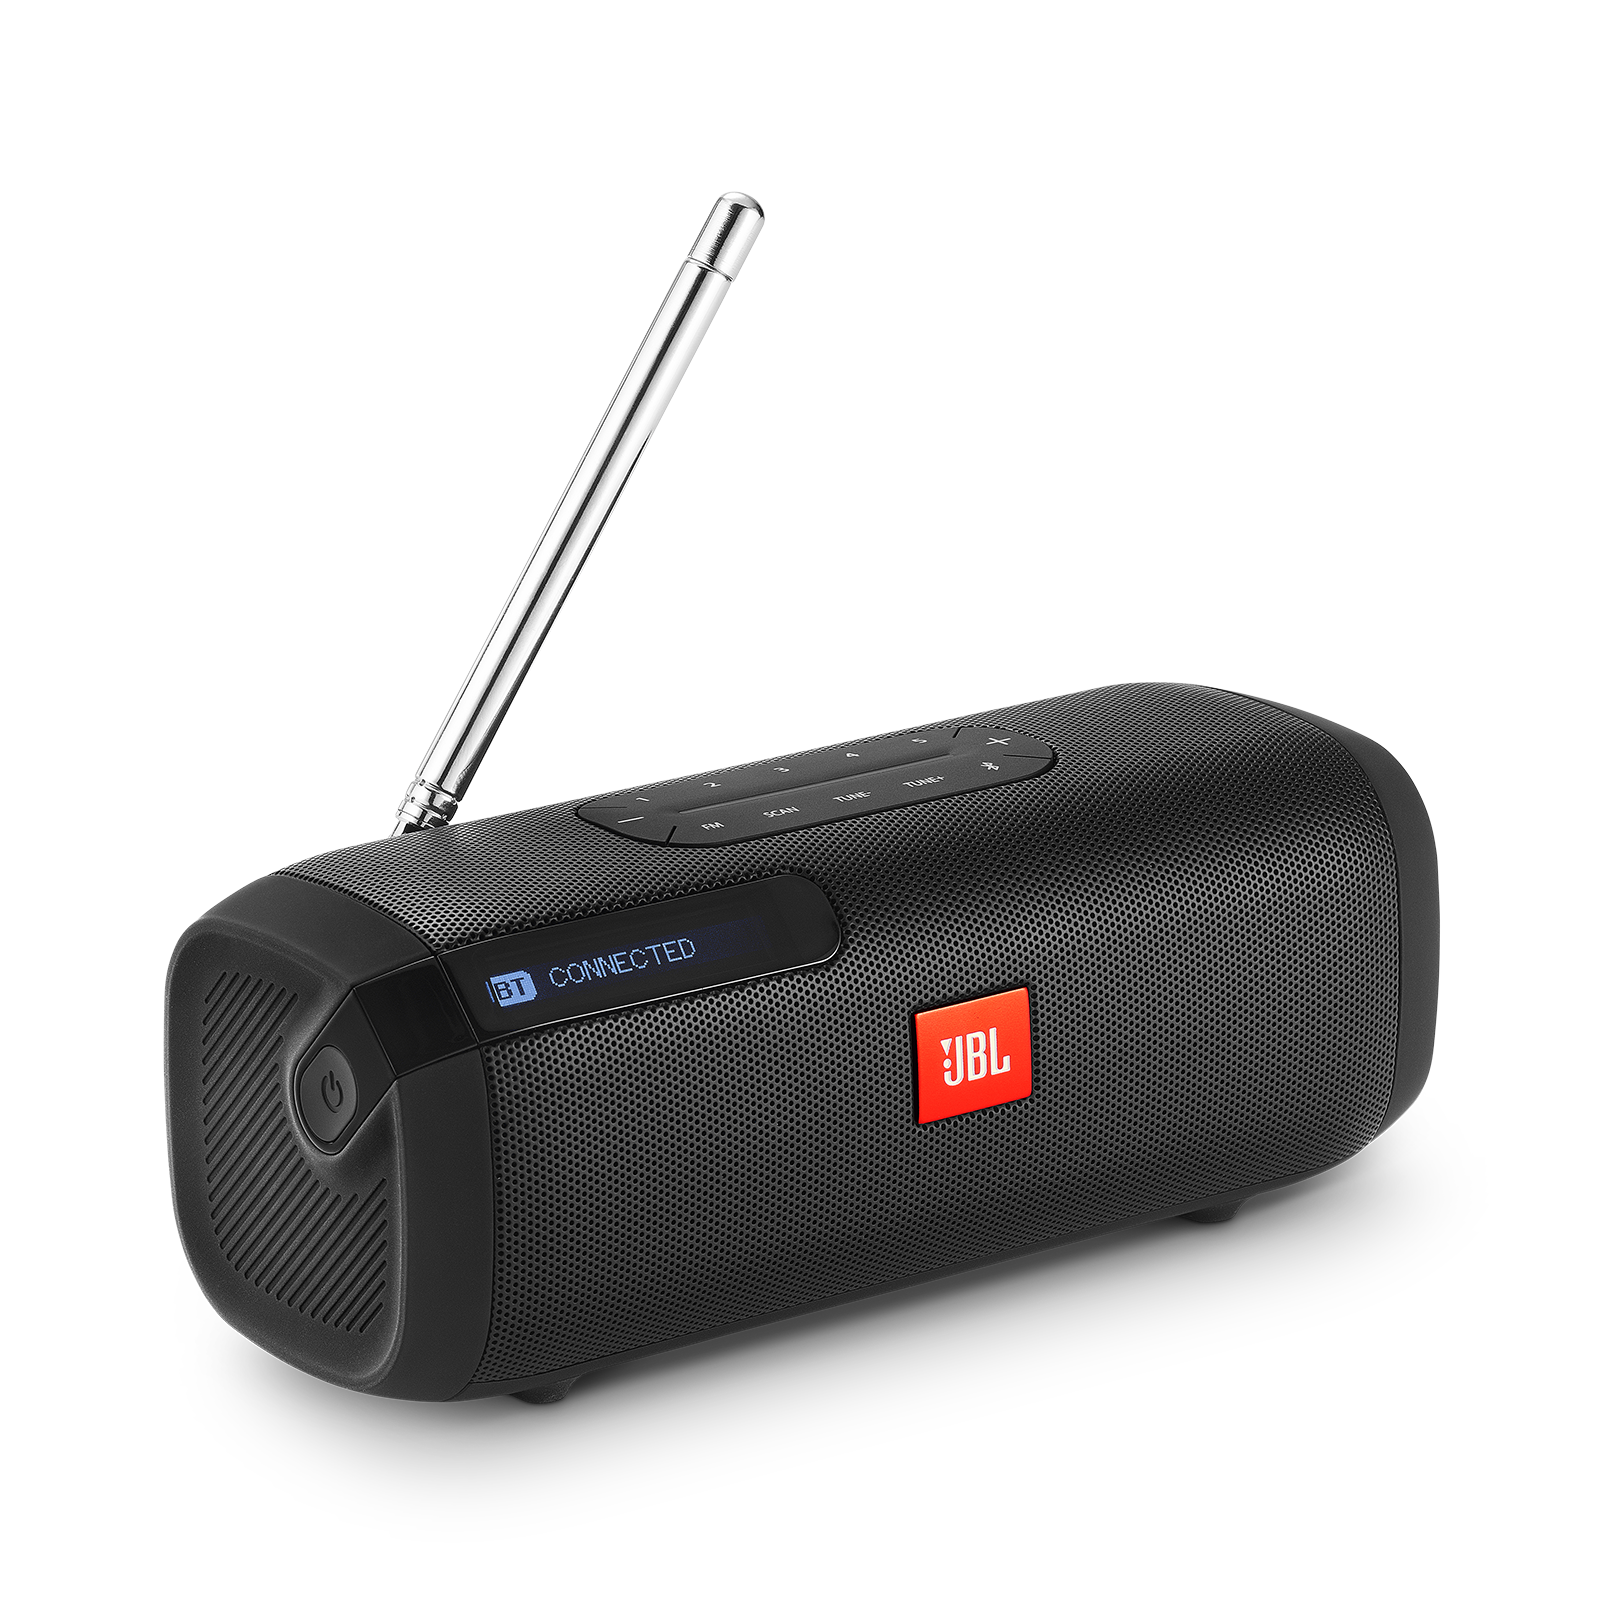 JBL Tuner FM - Black - Portable Bluetooth Speaker with FM radio - Hero